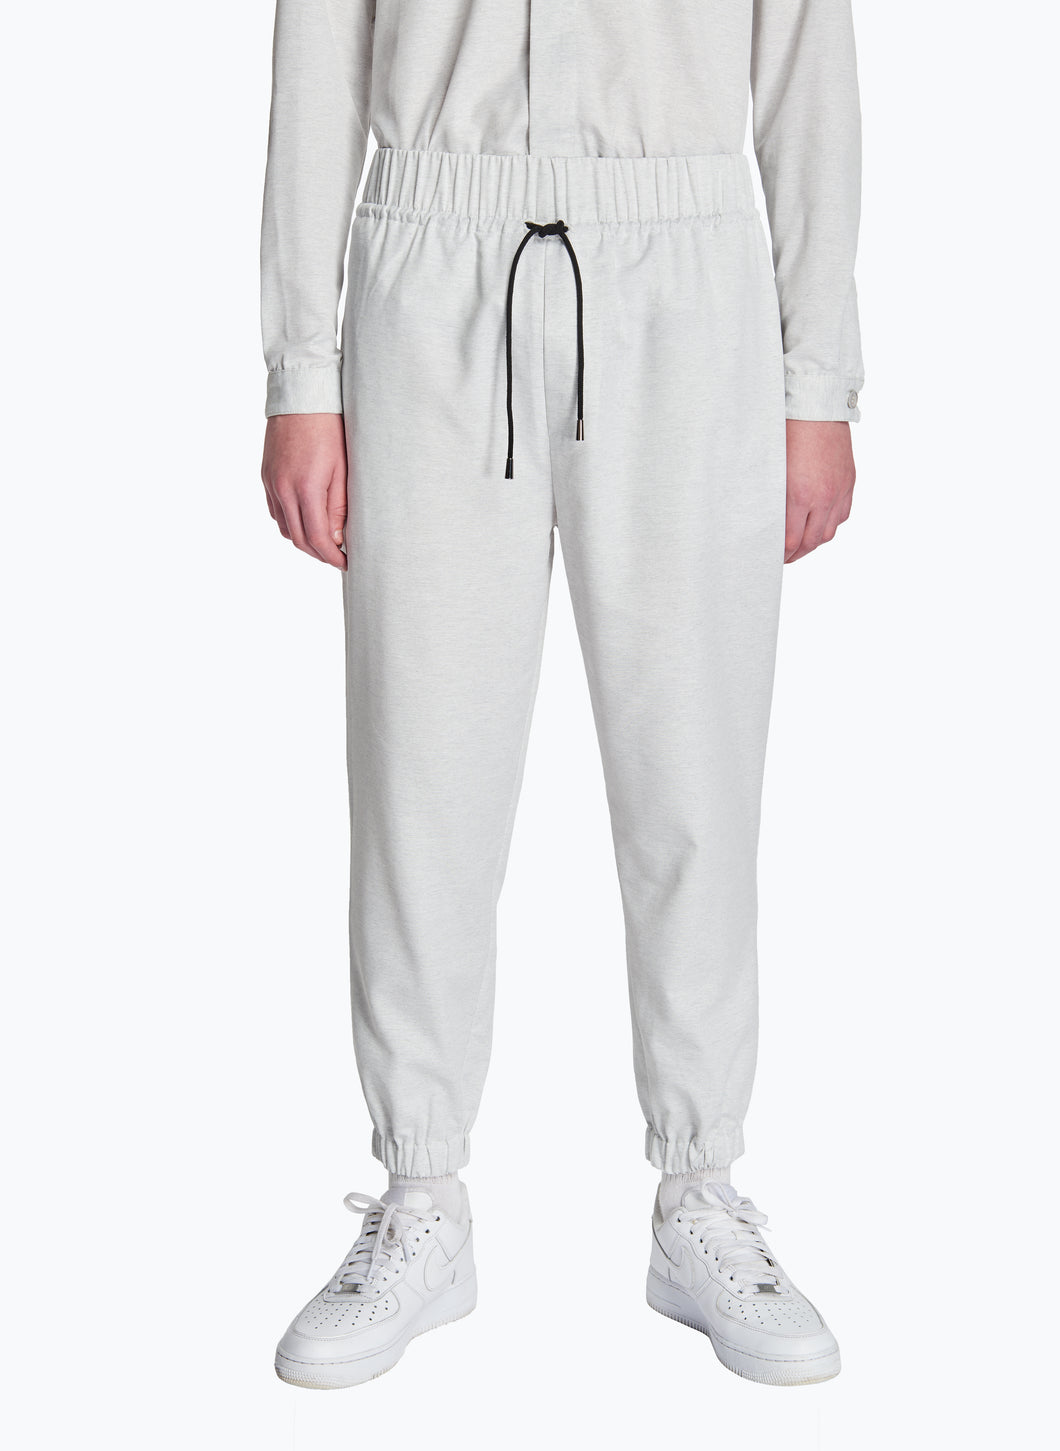 Jogging Pants in Light Grey Recycled Cotton